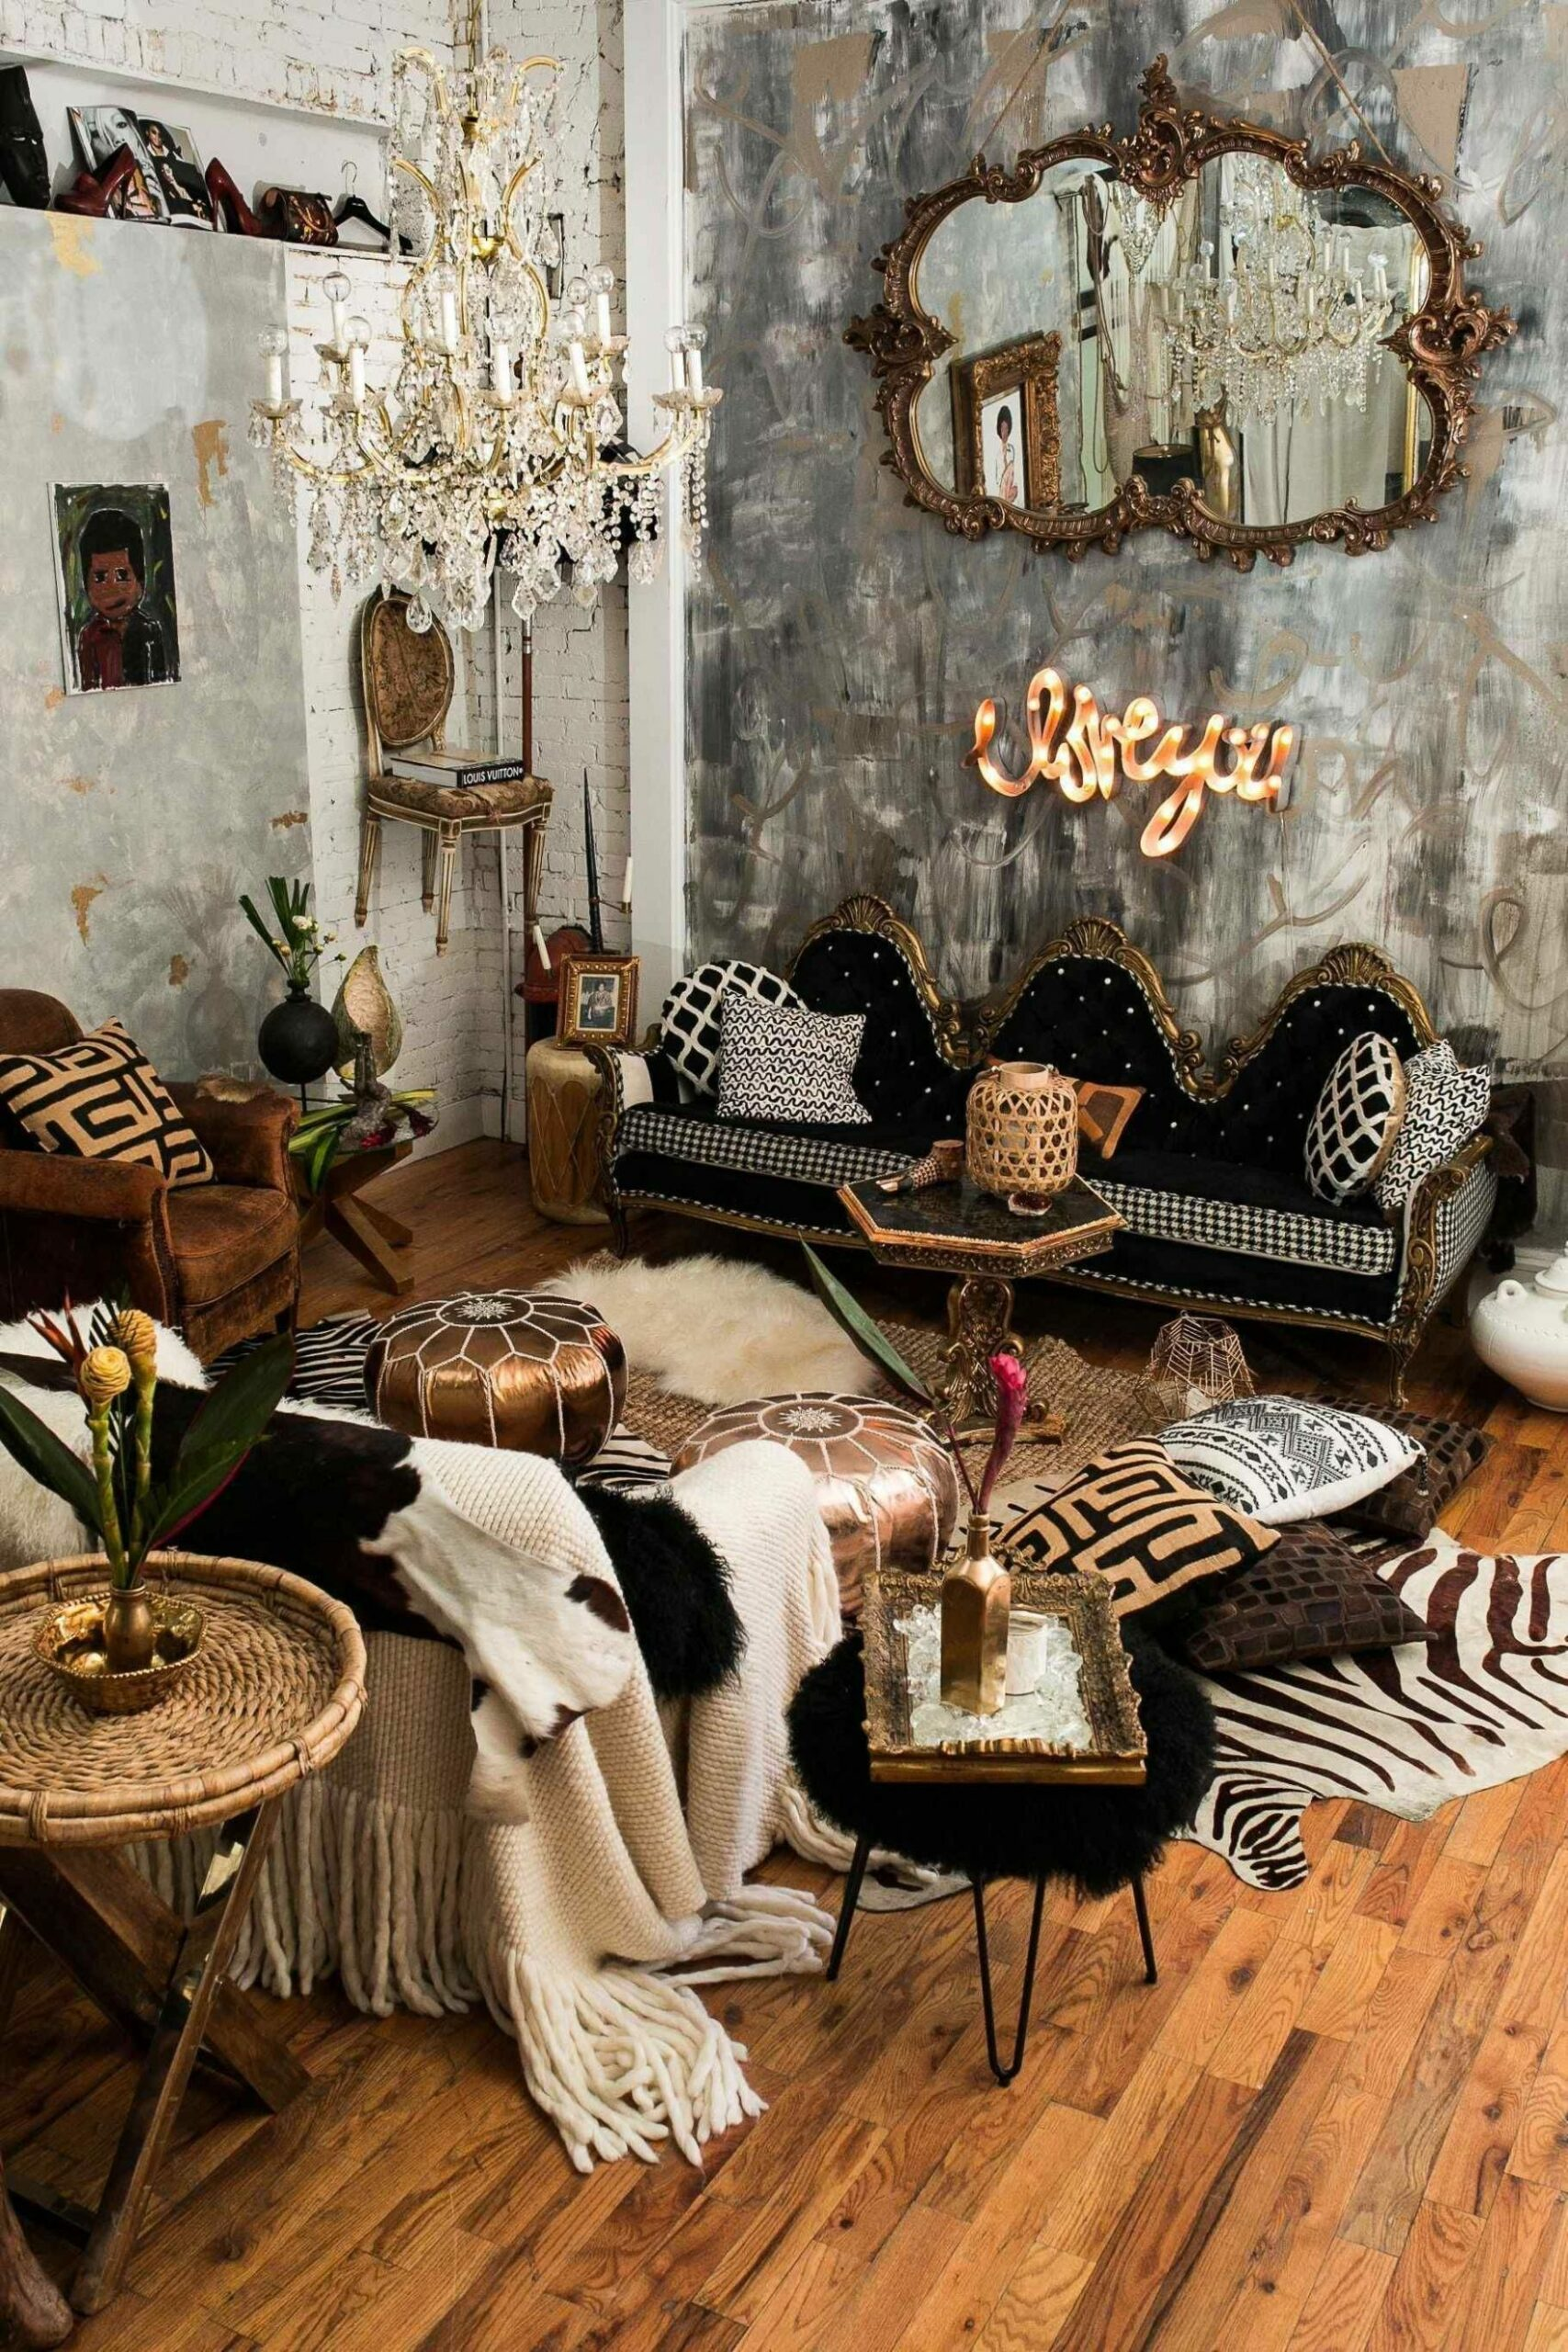 Express Your Individuality With Boho Home Decor | Maximalist decor ..